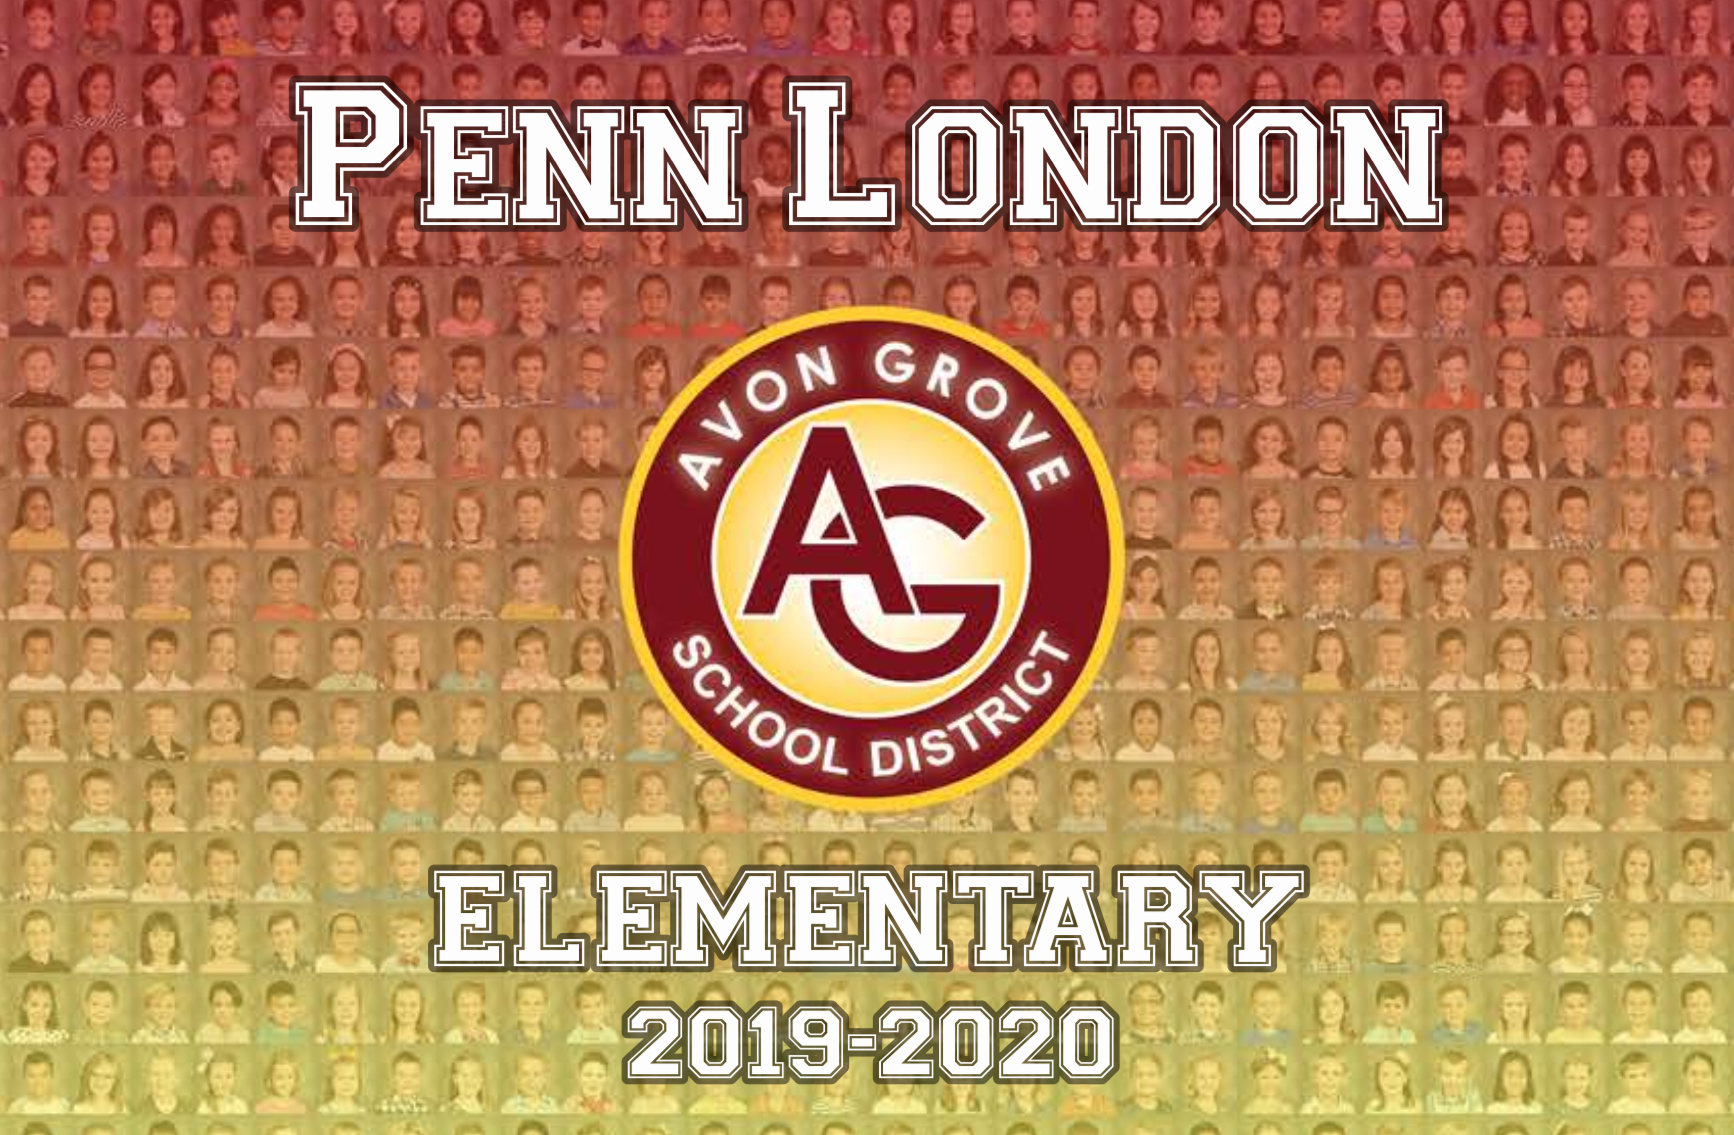 Penn London Elementary 2019-2020 Memory Book Cover